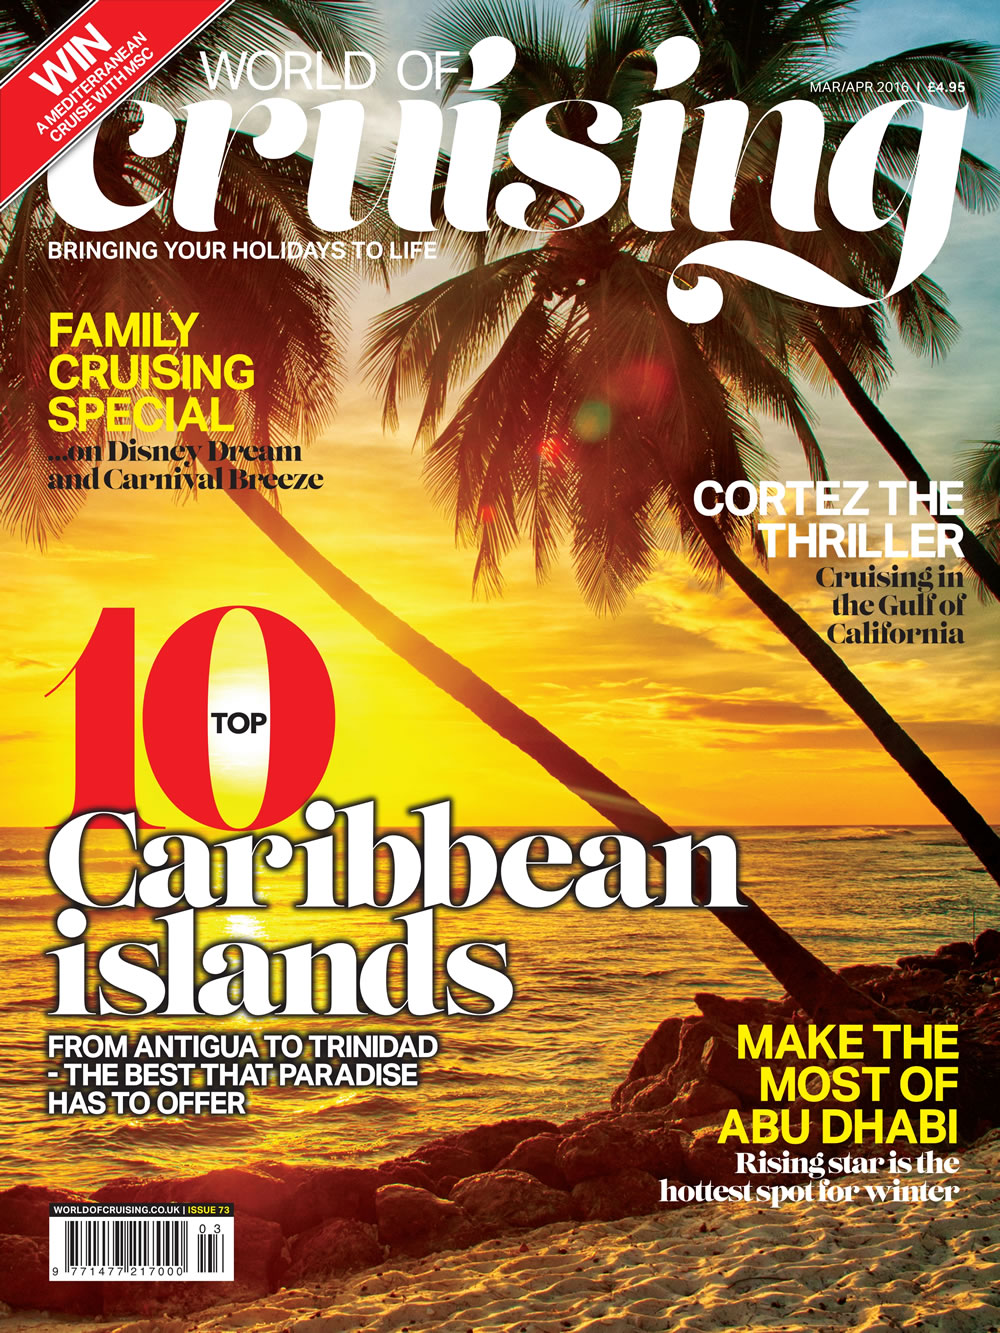 World of Cruising February/March 2016